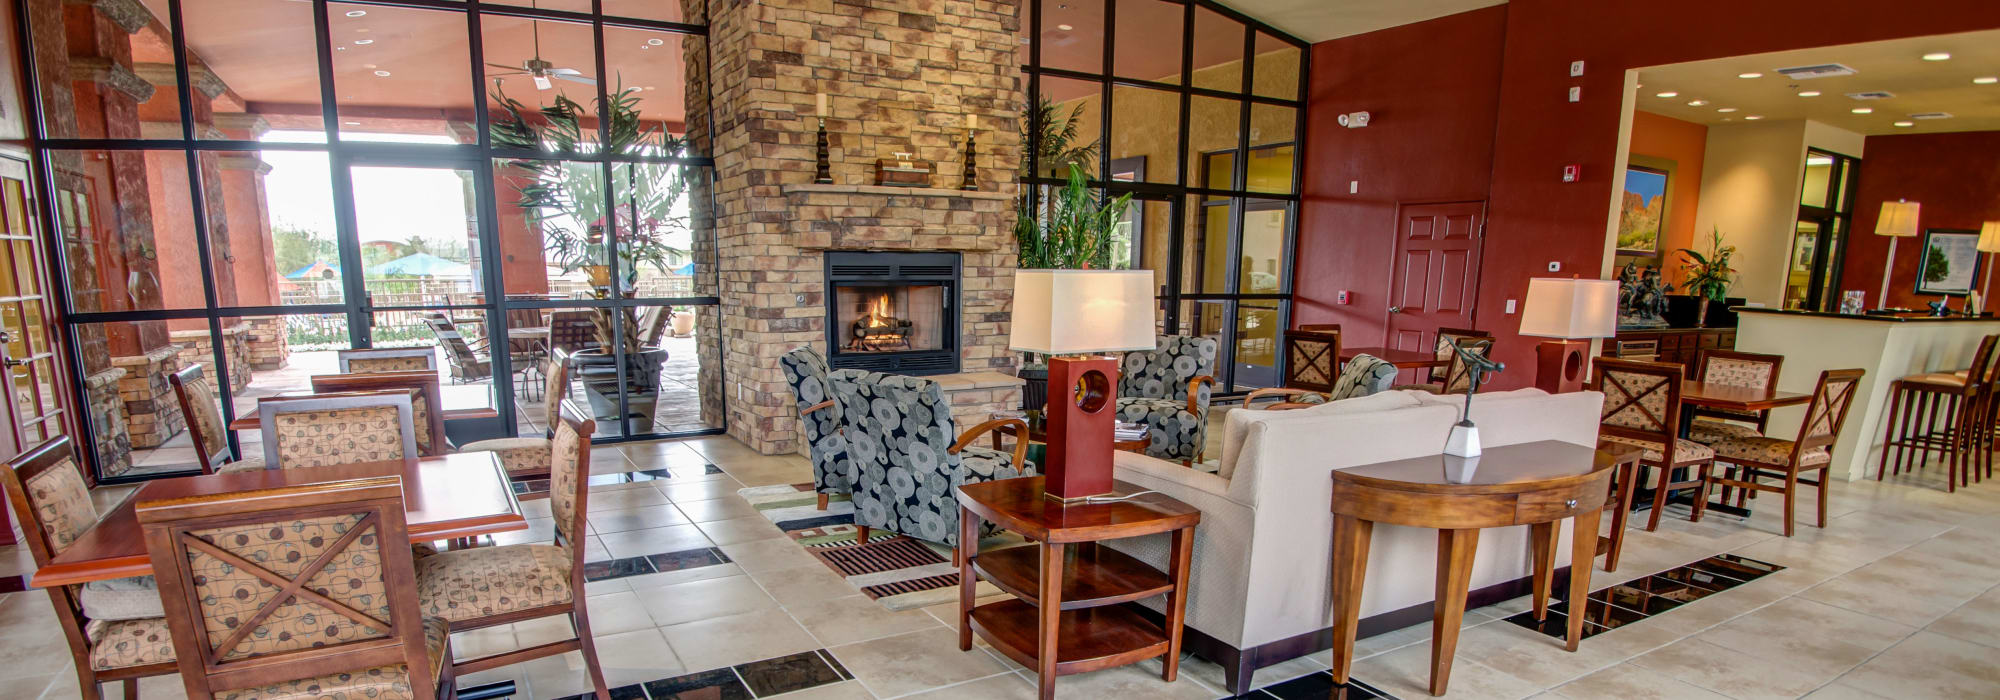 Great room in Oro Valley, Arizona at Oro Vista Apartments